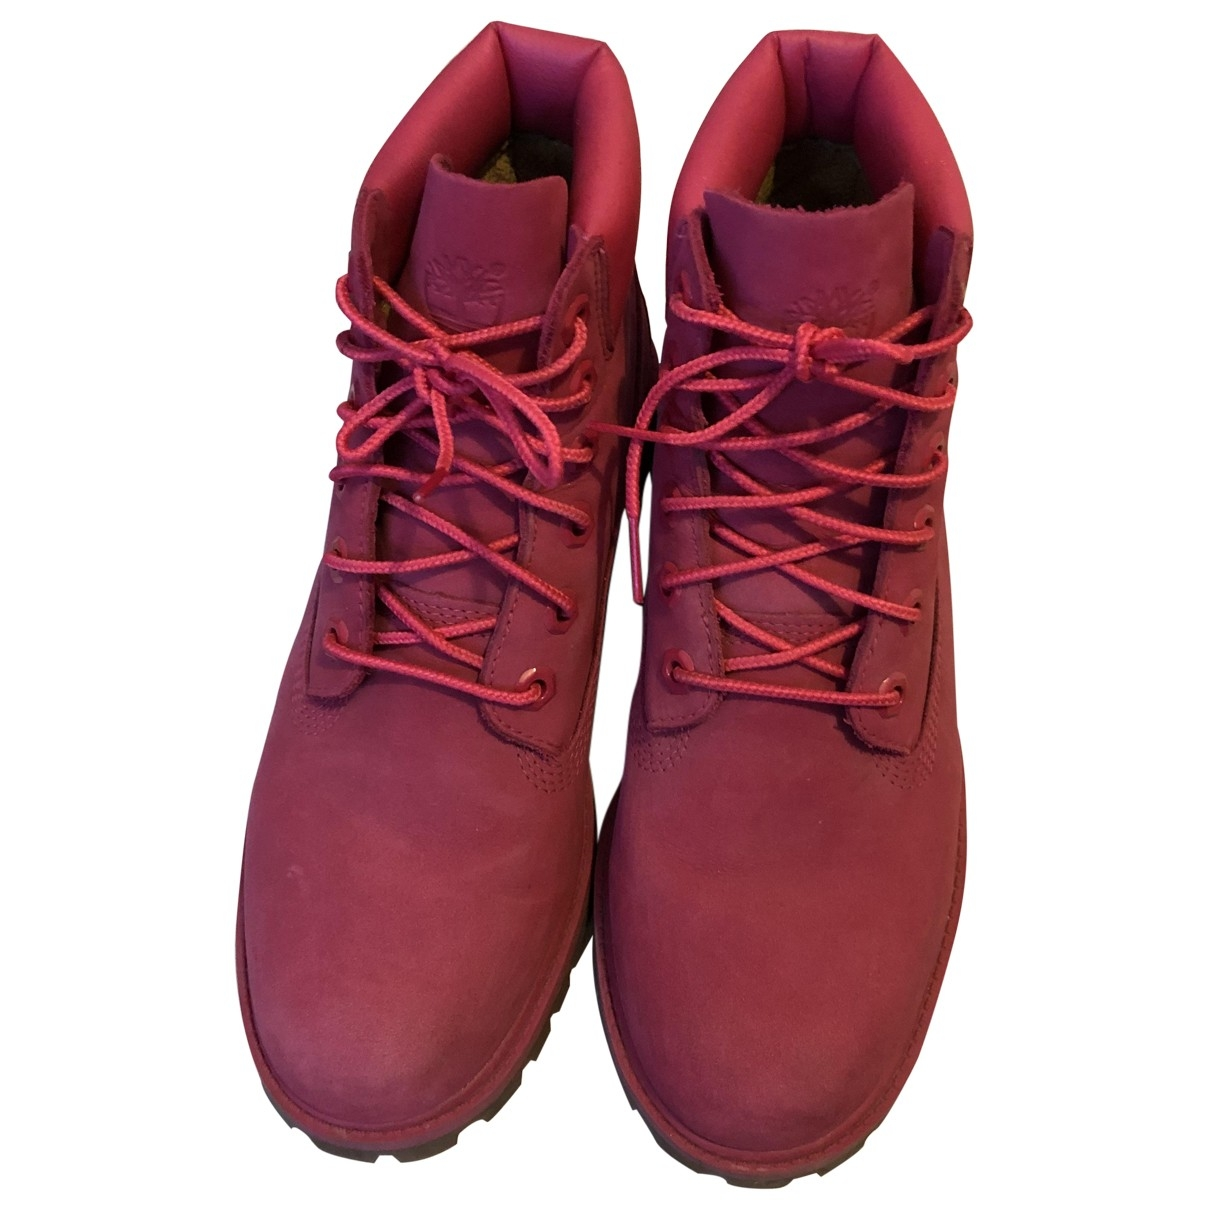 Timberland \N Pink Leather Boots for Women 38 EU